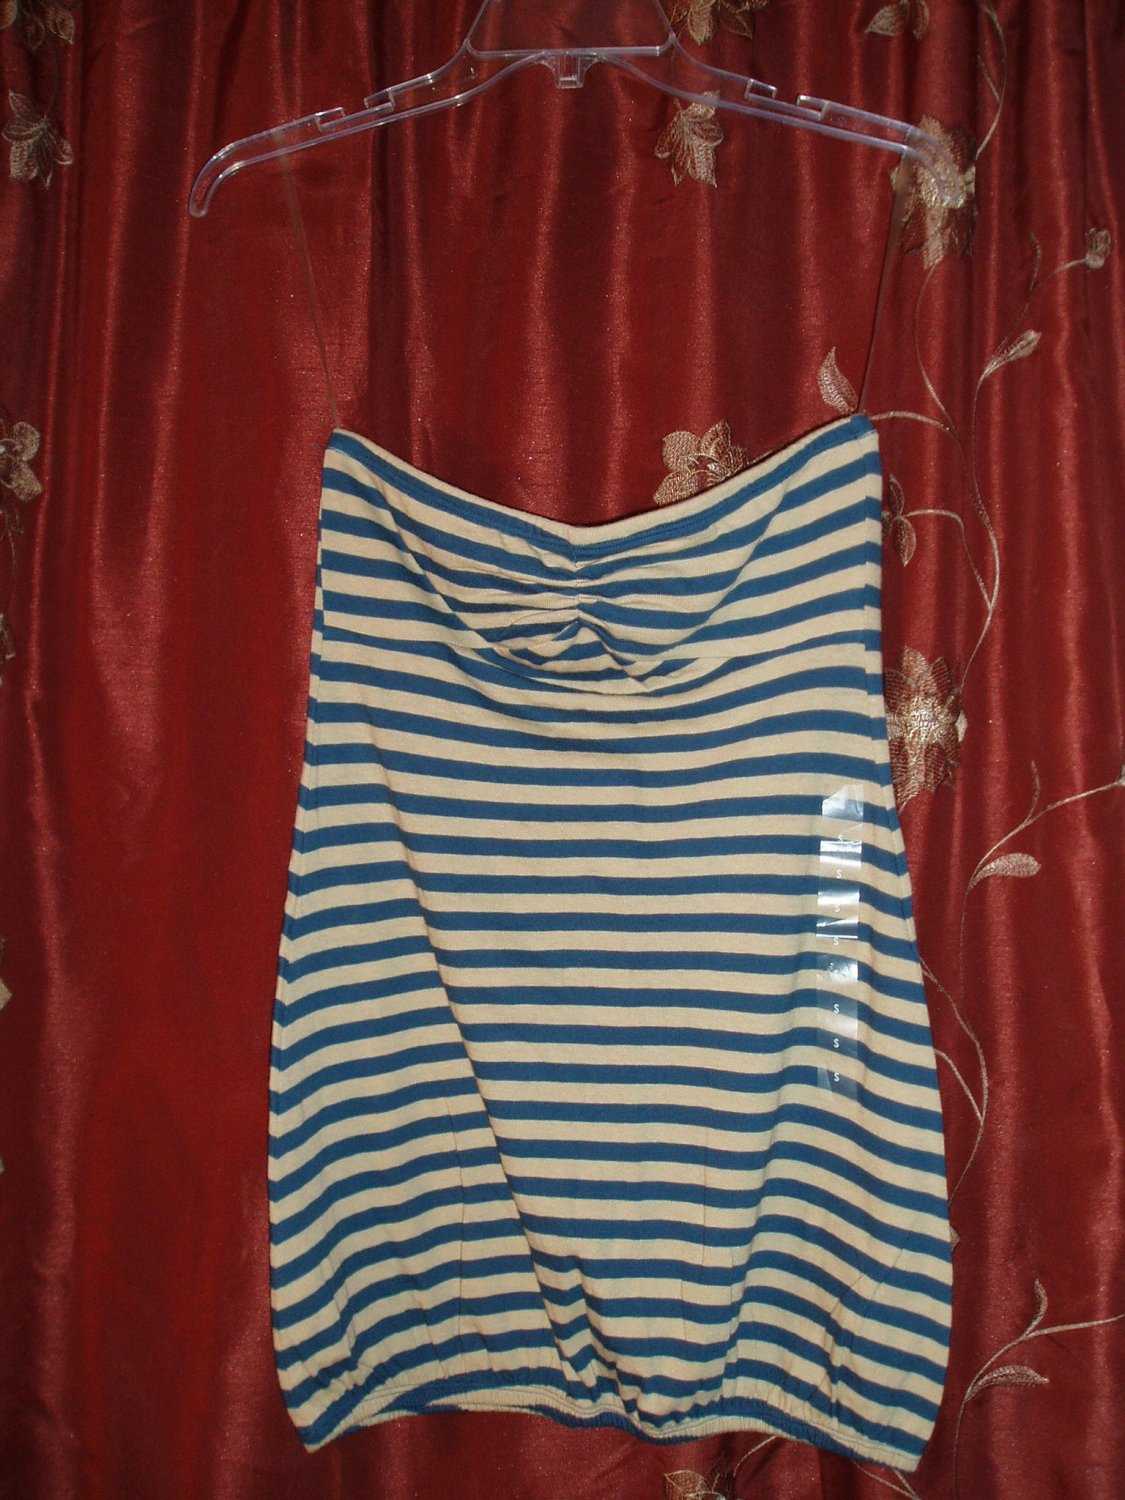 DKNY Jeans top with stripes, Size Juniors, S